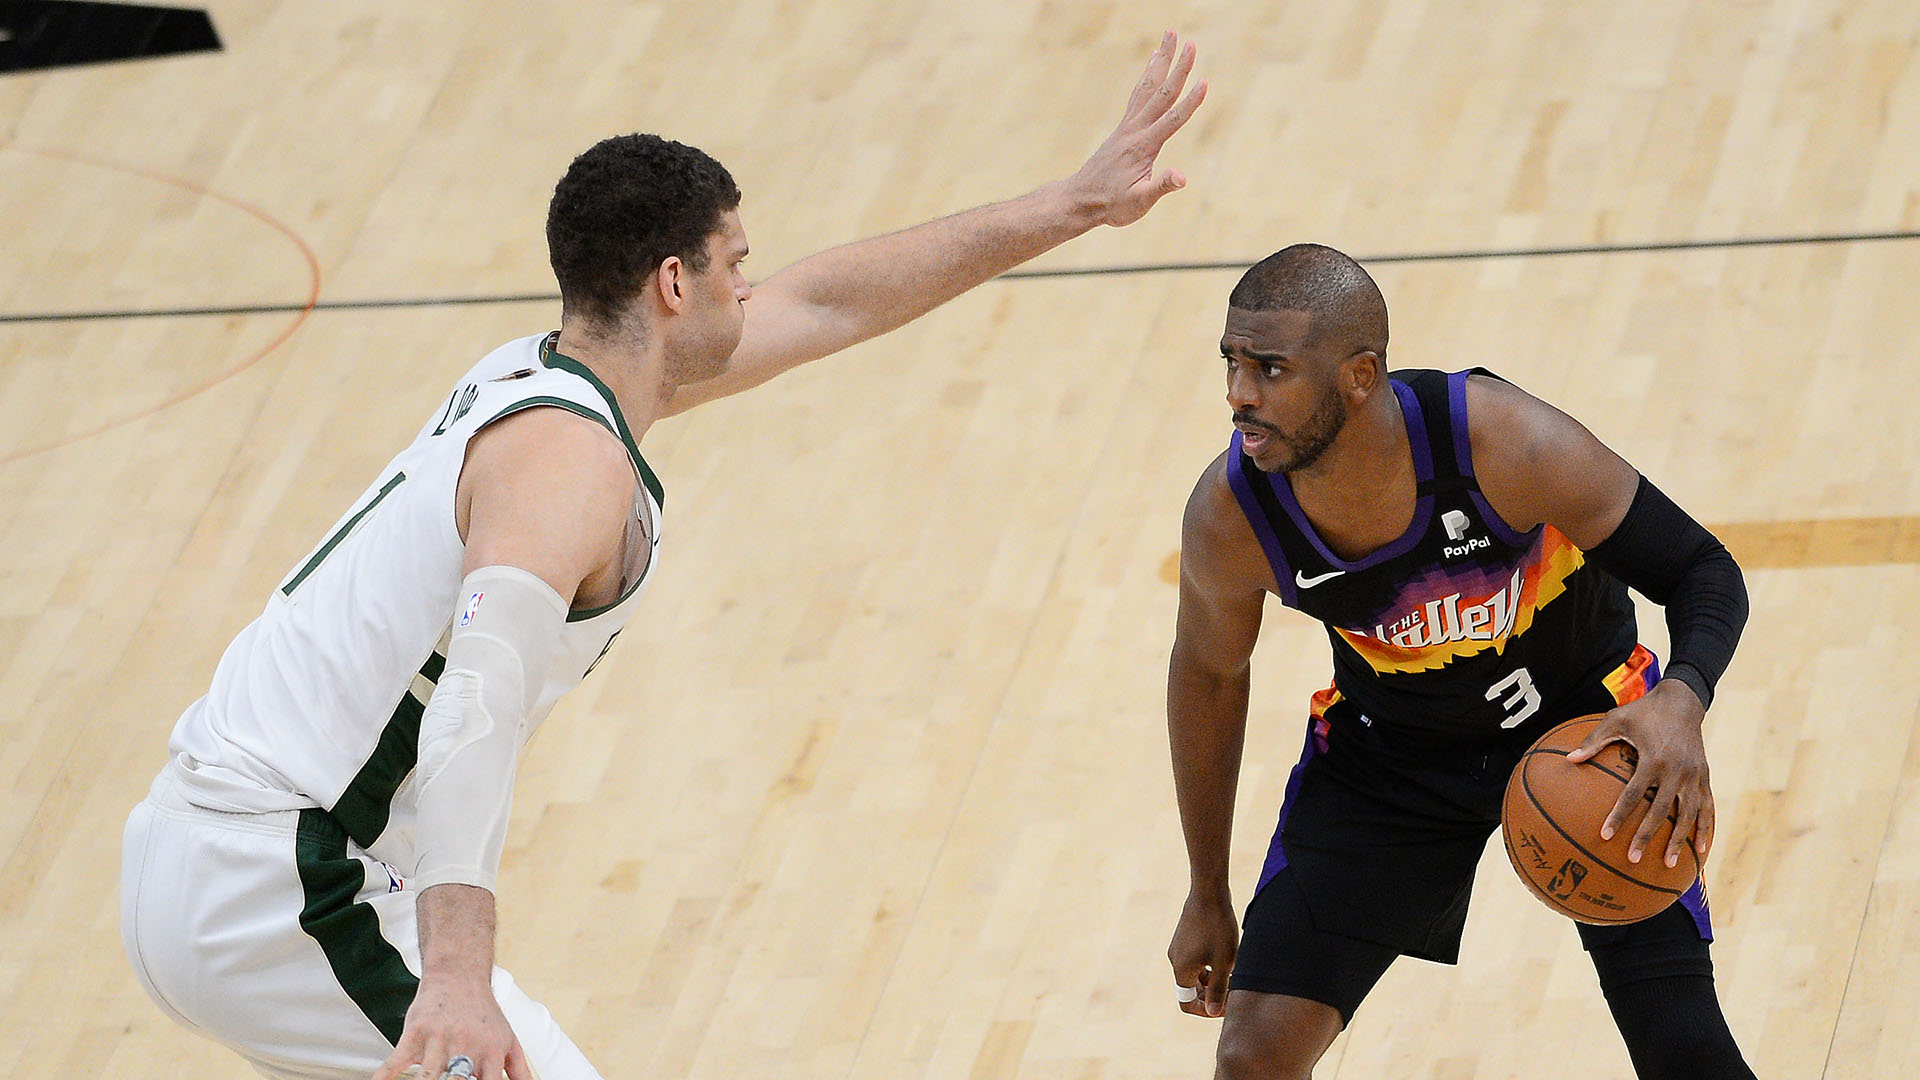 Finals Film Study: Suns go at Brook Lopez early and often in Game 1